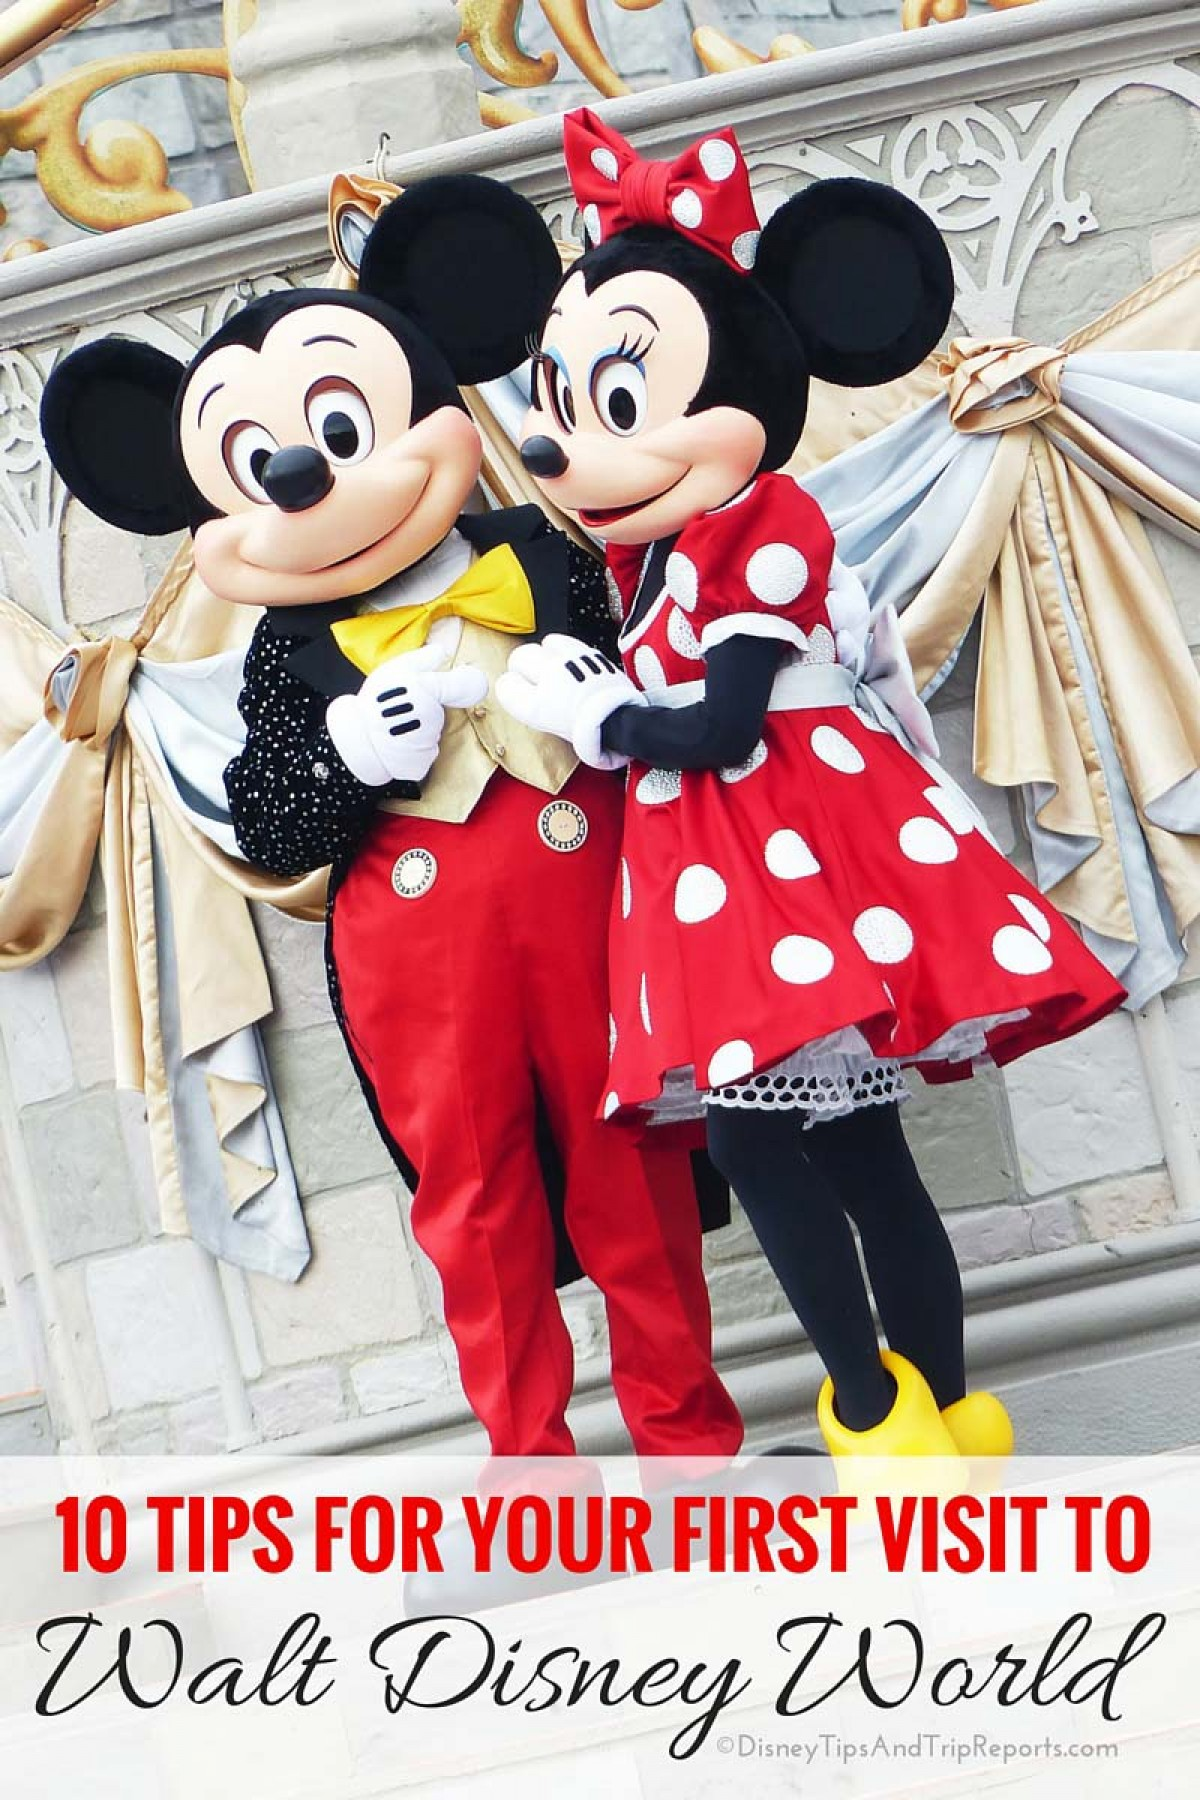 10 Tips For Your First Visit To Walt Disney World Disney Tips Amp Trip Reports